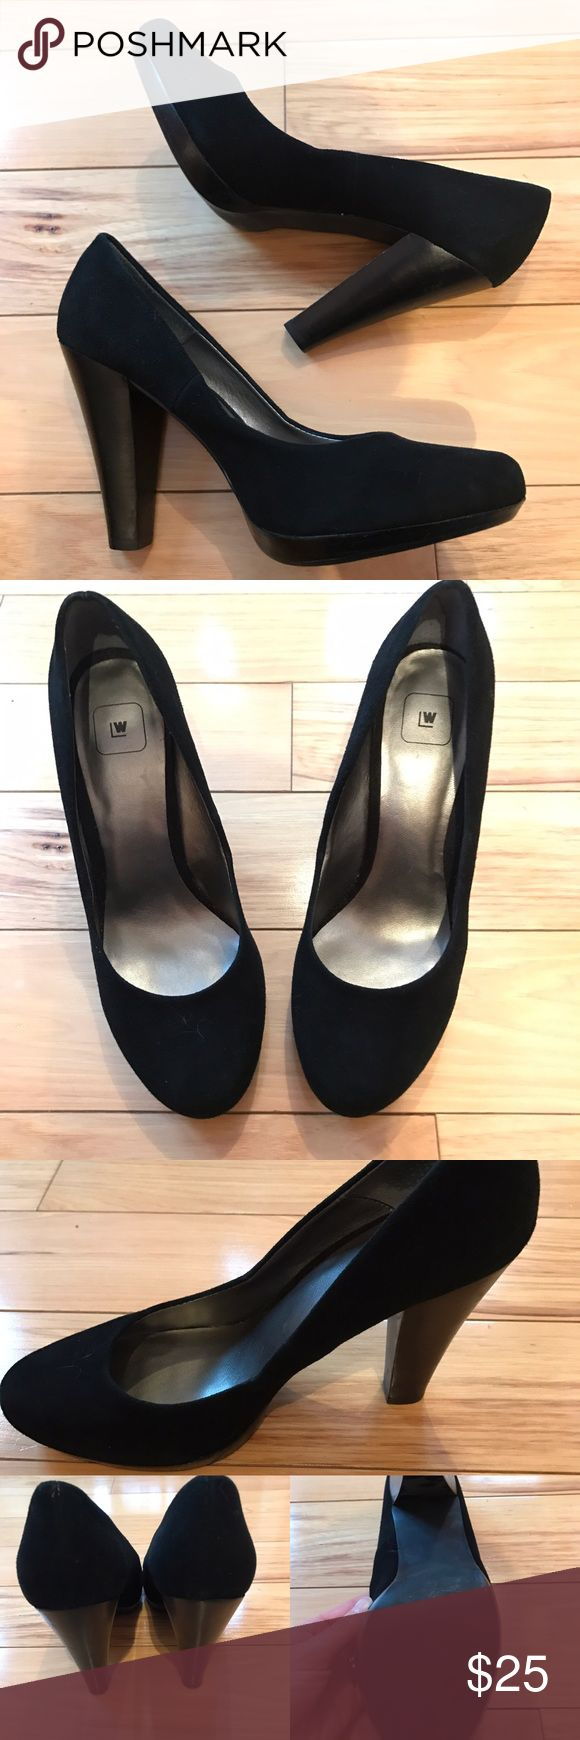 "EUC Wilsons Leather Anna Black Suede Pumps Wilsons Leather Anna Black Suede Pumps. Genuine Suede. Size 9. Look awesome on. Worn a few times. Excellent condition.  Heel to toe length 9.5"" heel height 4.25 Wilsons Leather Shoes Heels"